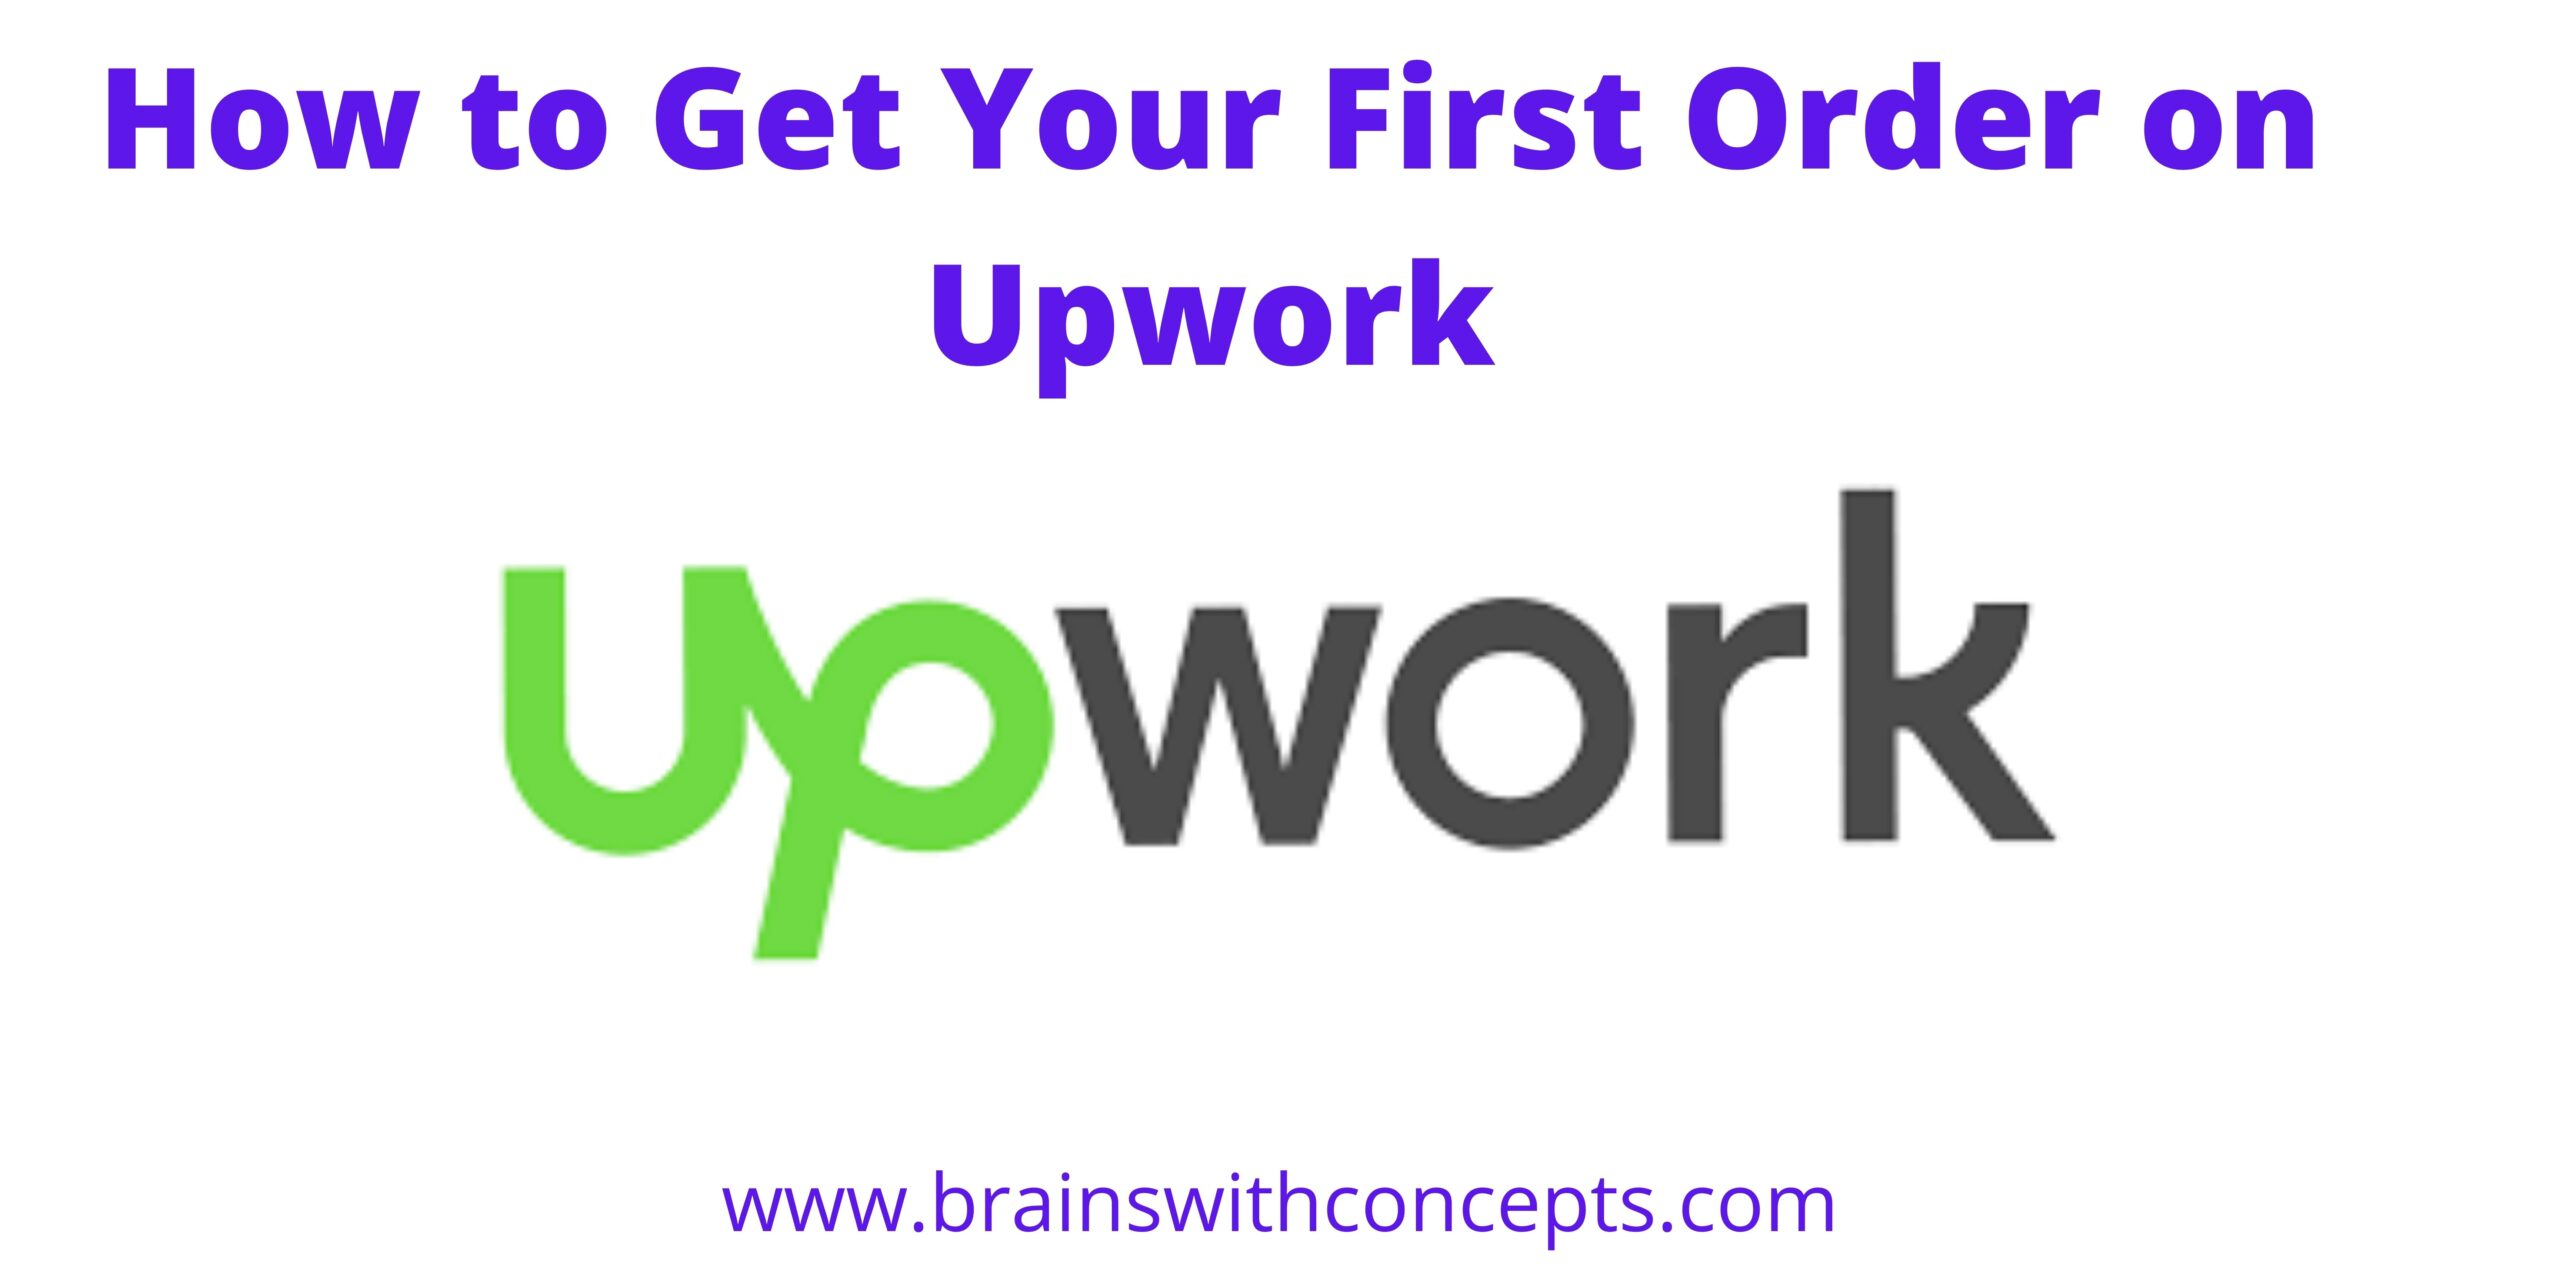 How to Get Your First Order on Upwork